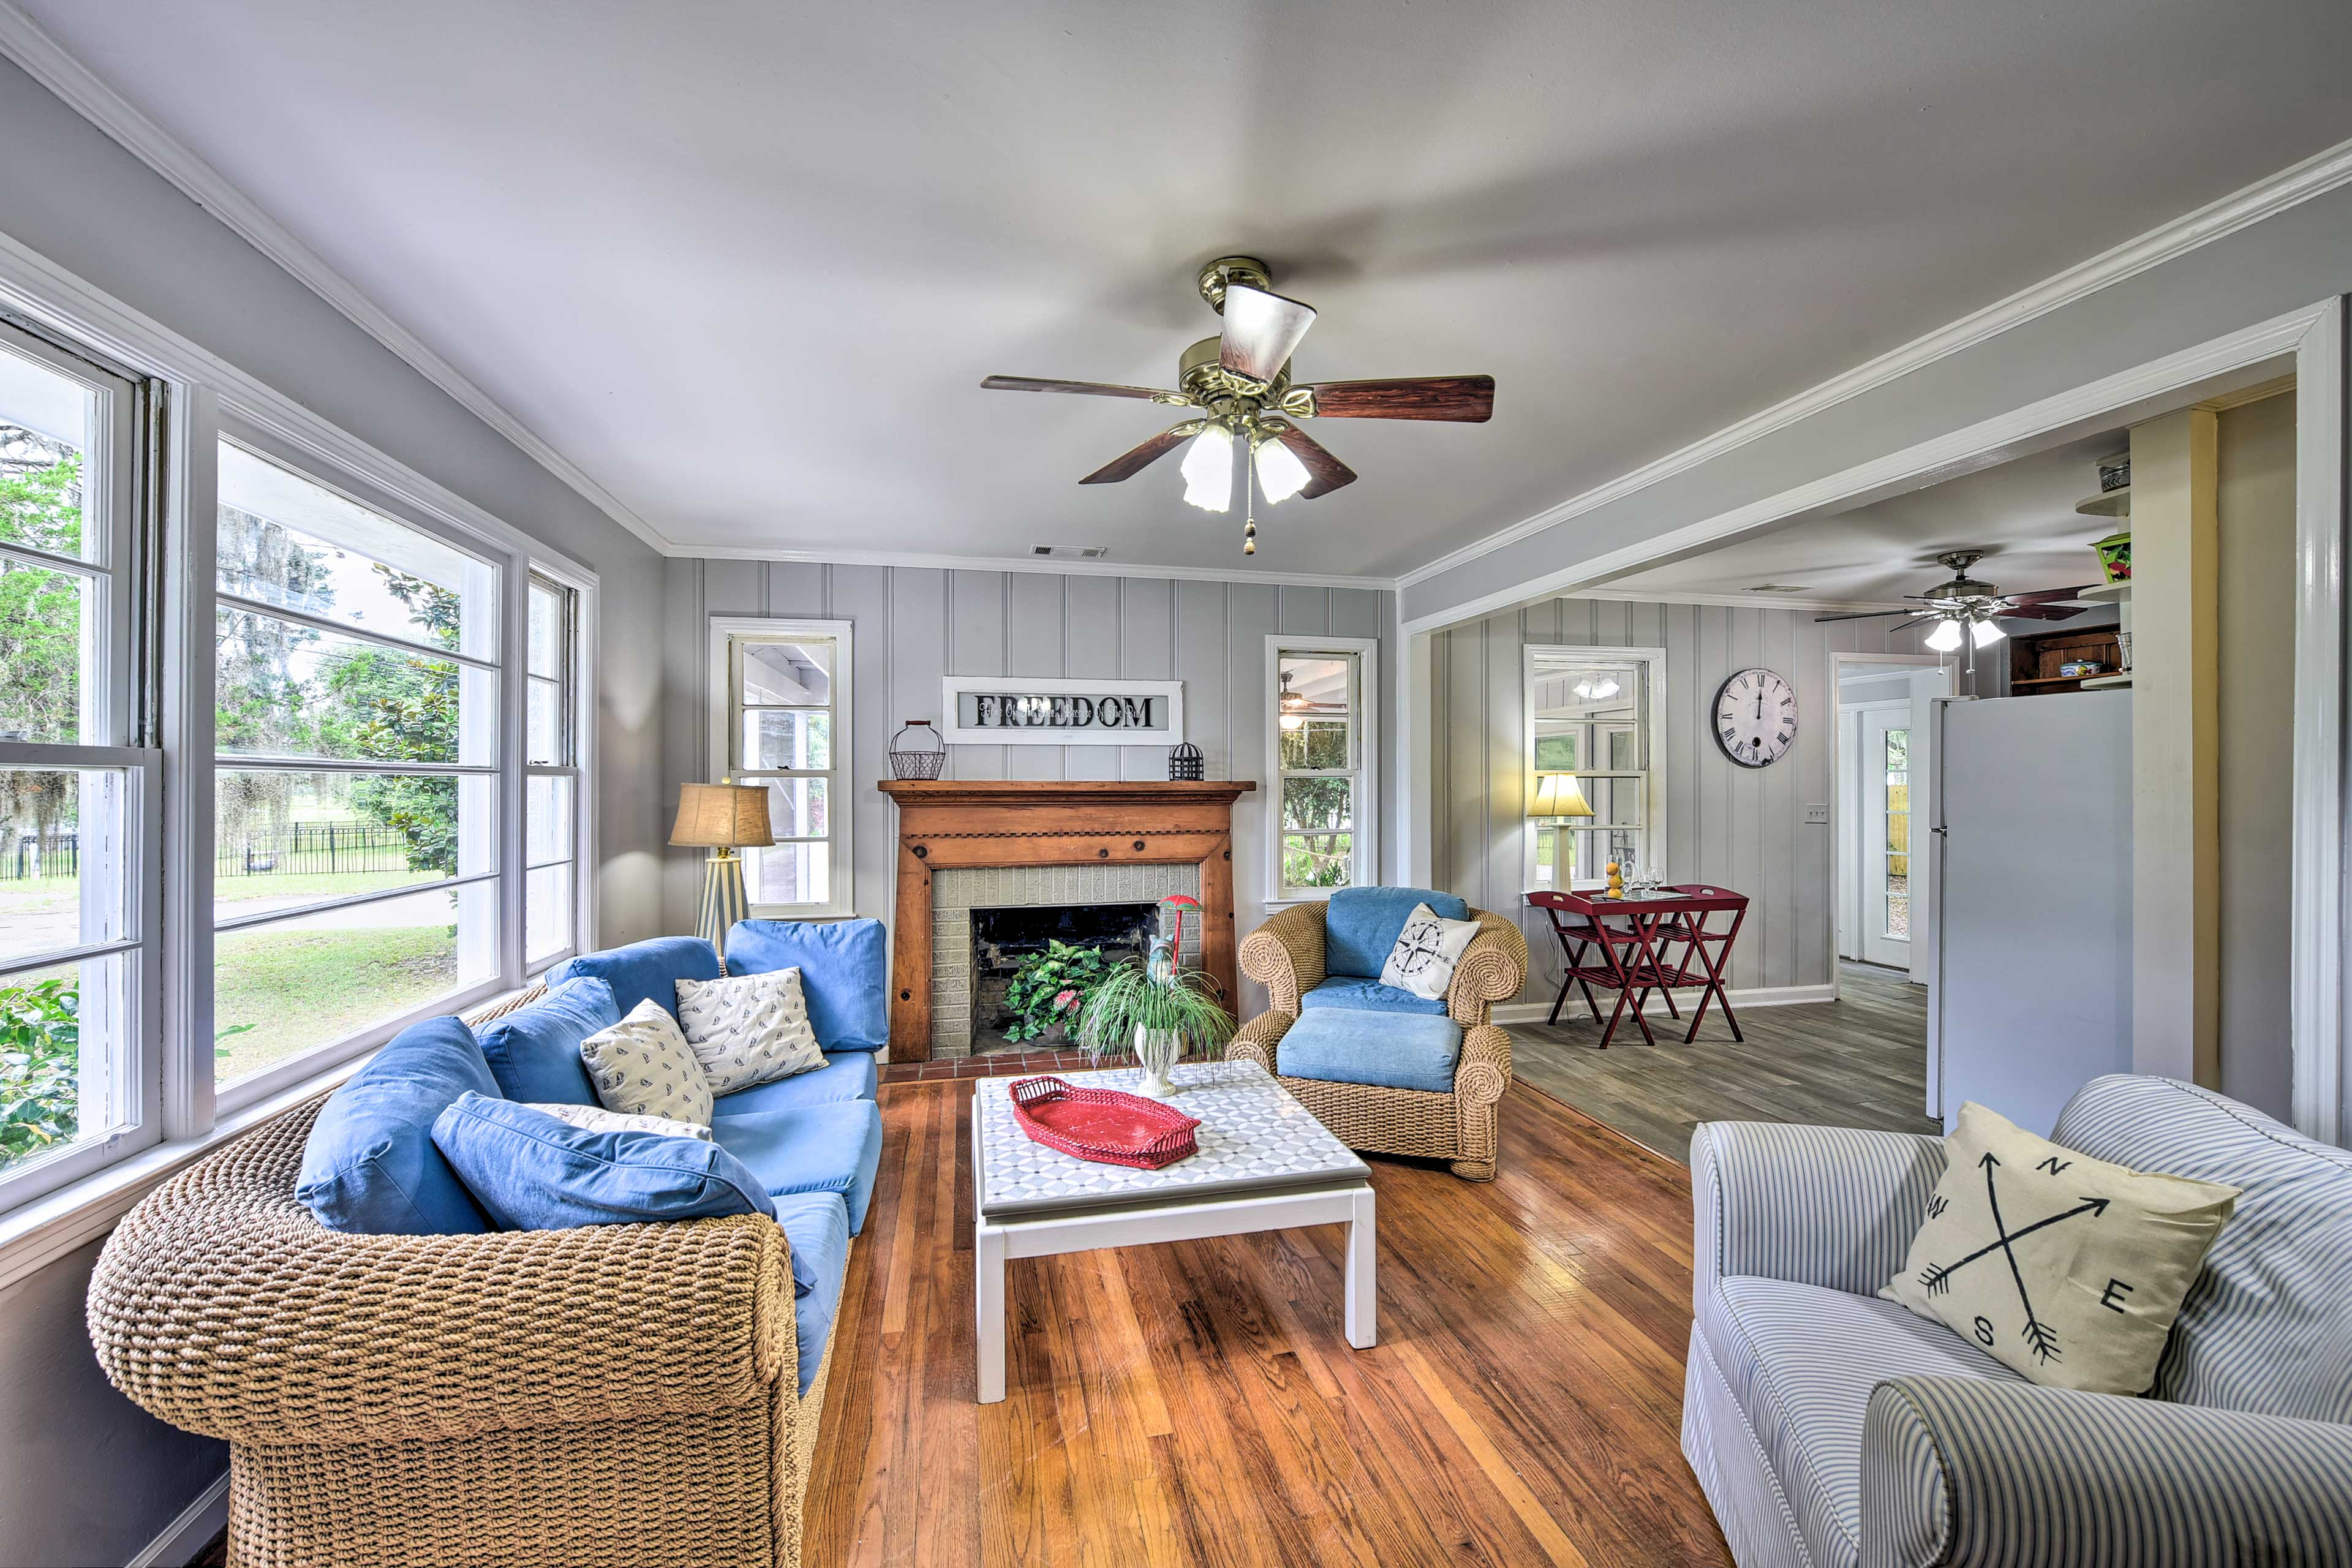 With seating for the whole group, the living room is a great spot to congregate.